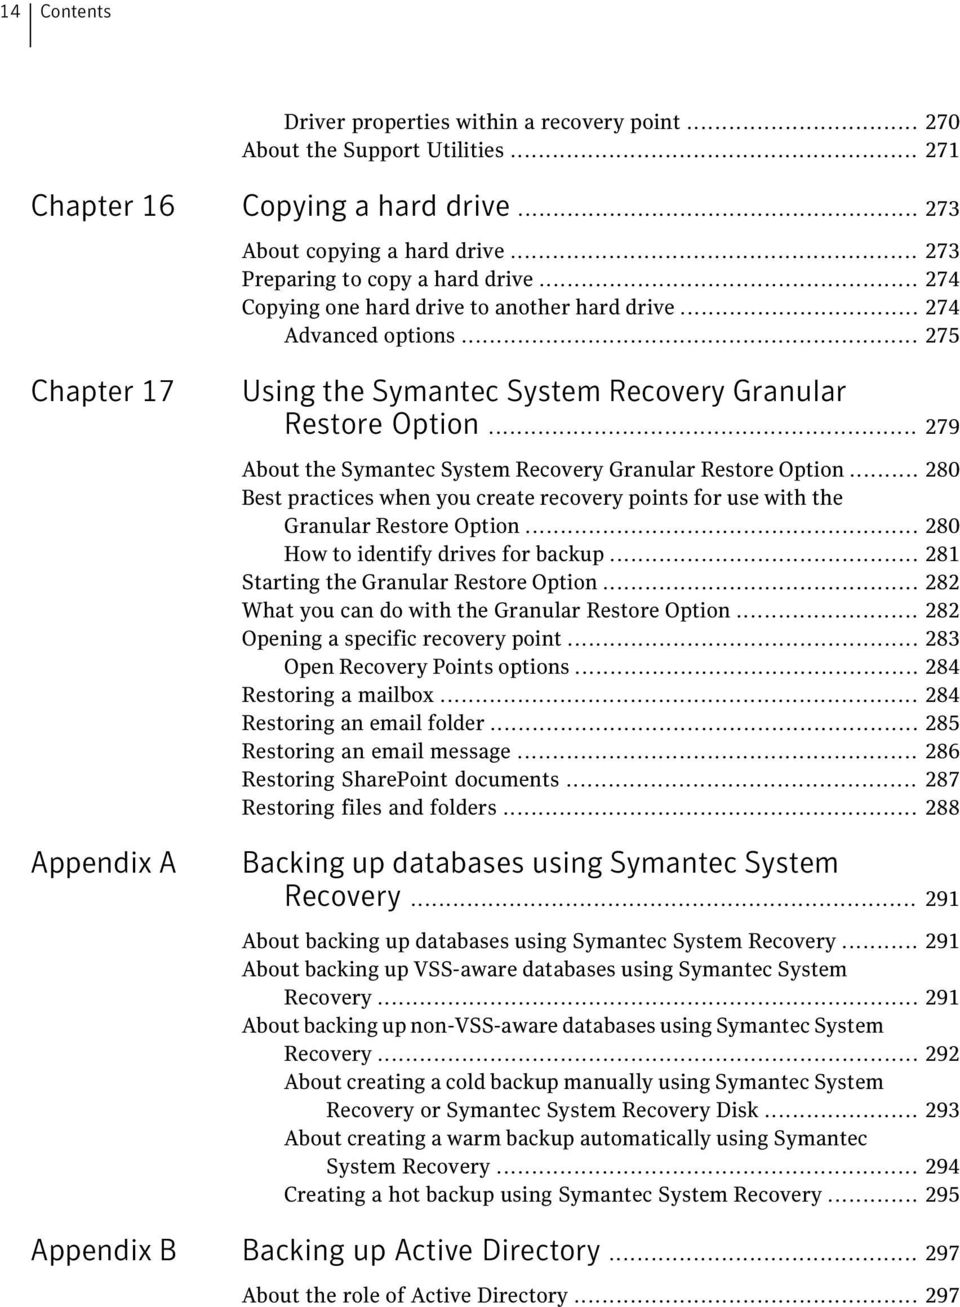 .. 279 About the Symantec System Recovery Granular Restore Option... 280 Best practices when you create recovery points for use with the Granular Restore Option... 280 How to identify drives for backup.